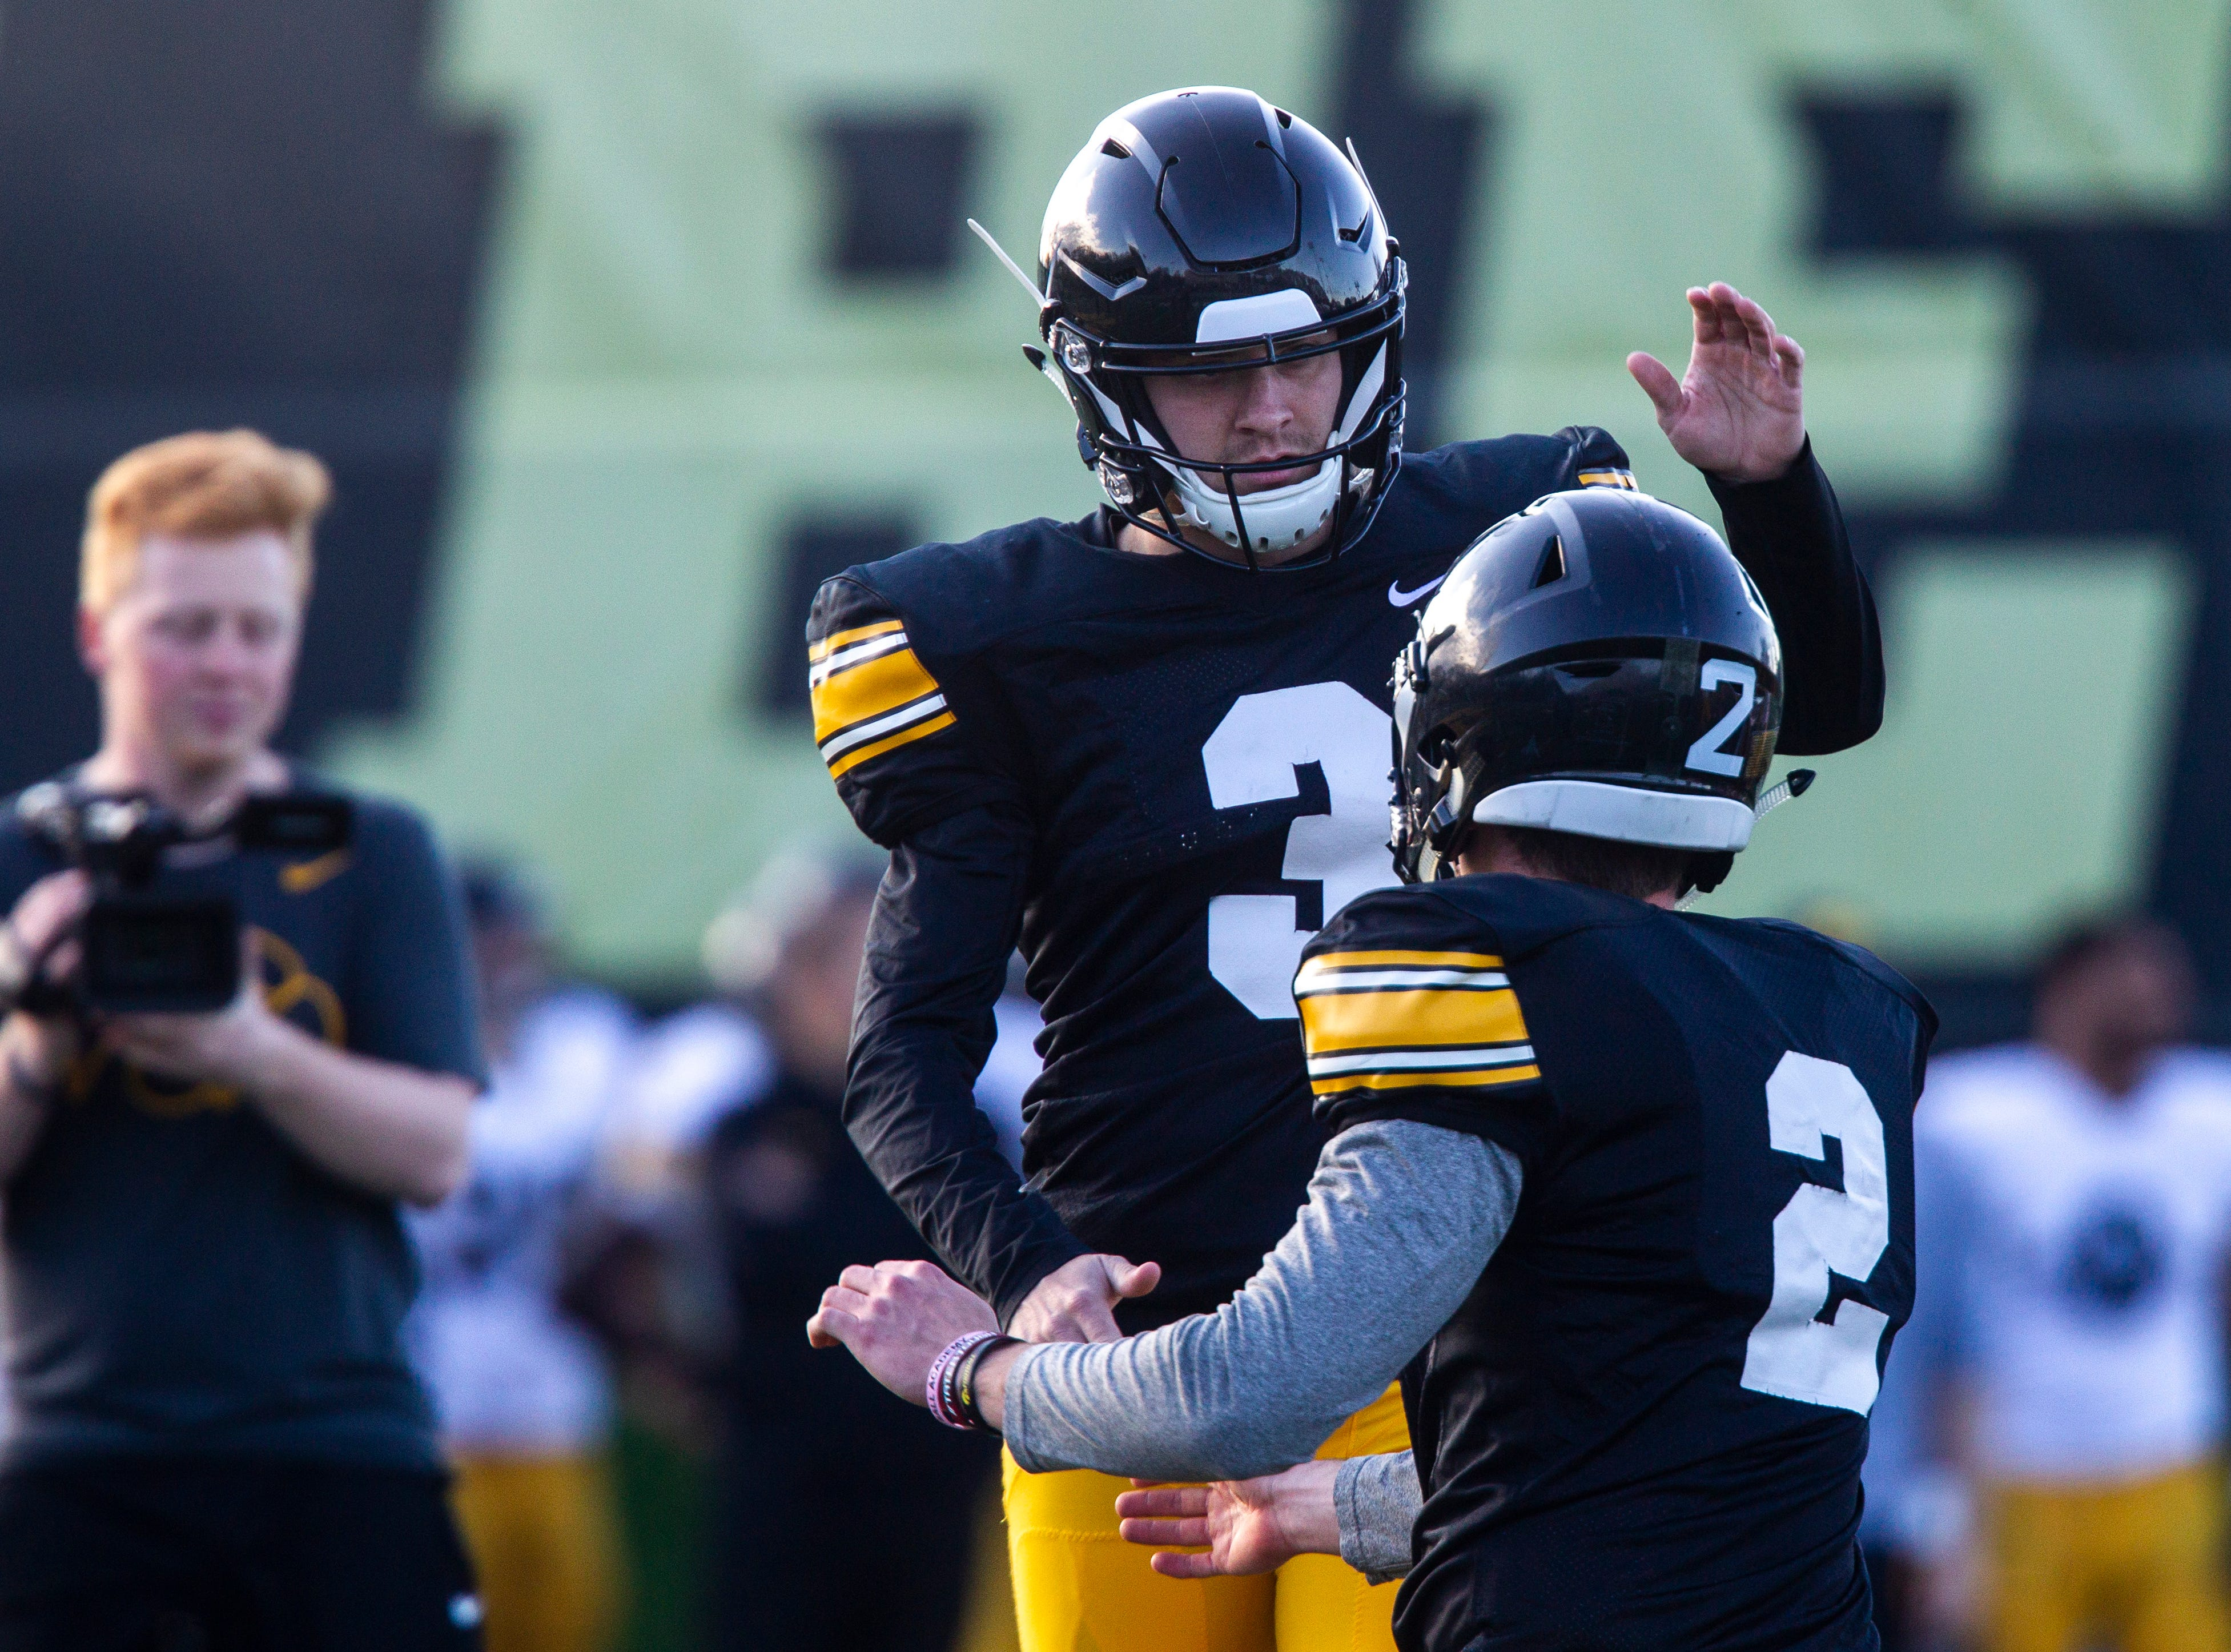 Iowa placekicker Keith Duncan (3) celebrates with holder Ryan Gersonde (2) after a made field goal during the final spring football practice, Friday, April 26, 2019, at the University of Iowa outdoor practice facility in Iowa City, Iowa.